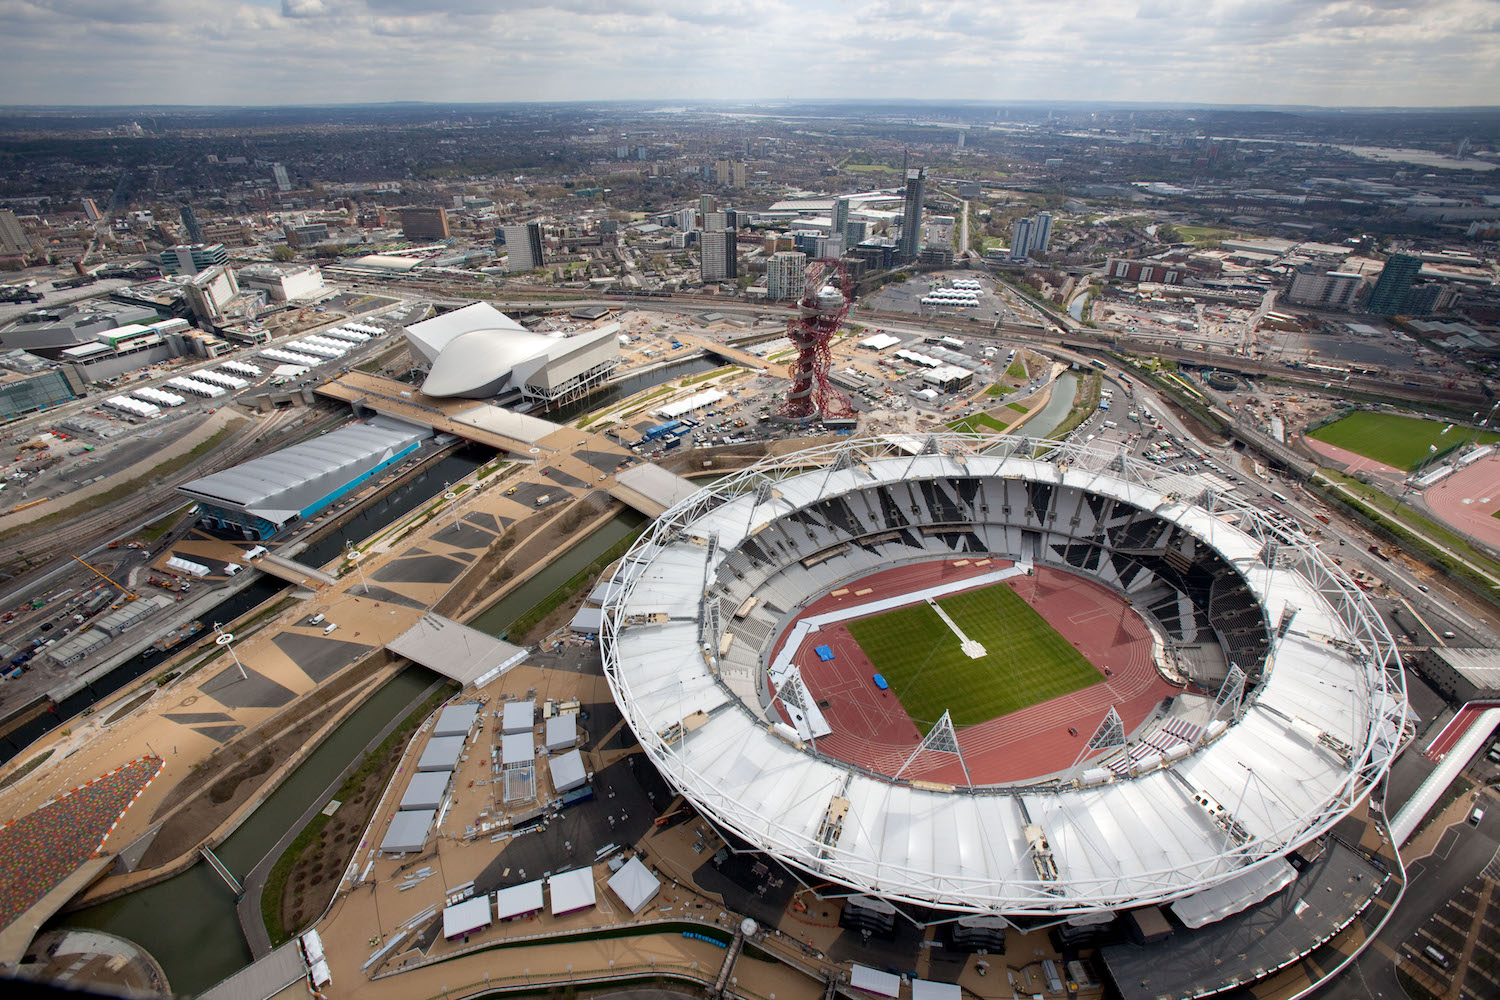 Aerial view of the Olympic Park showing the Olympic Stadium the Aquatics Centre and Water Polo Arena to the left.